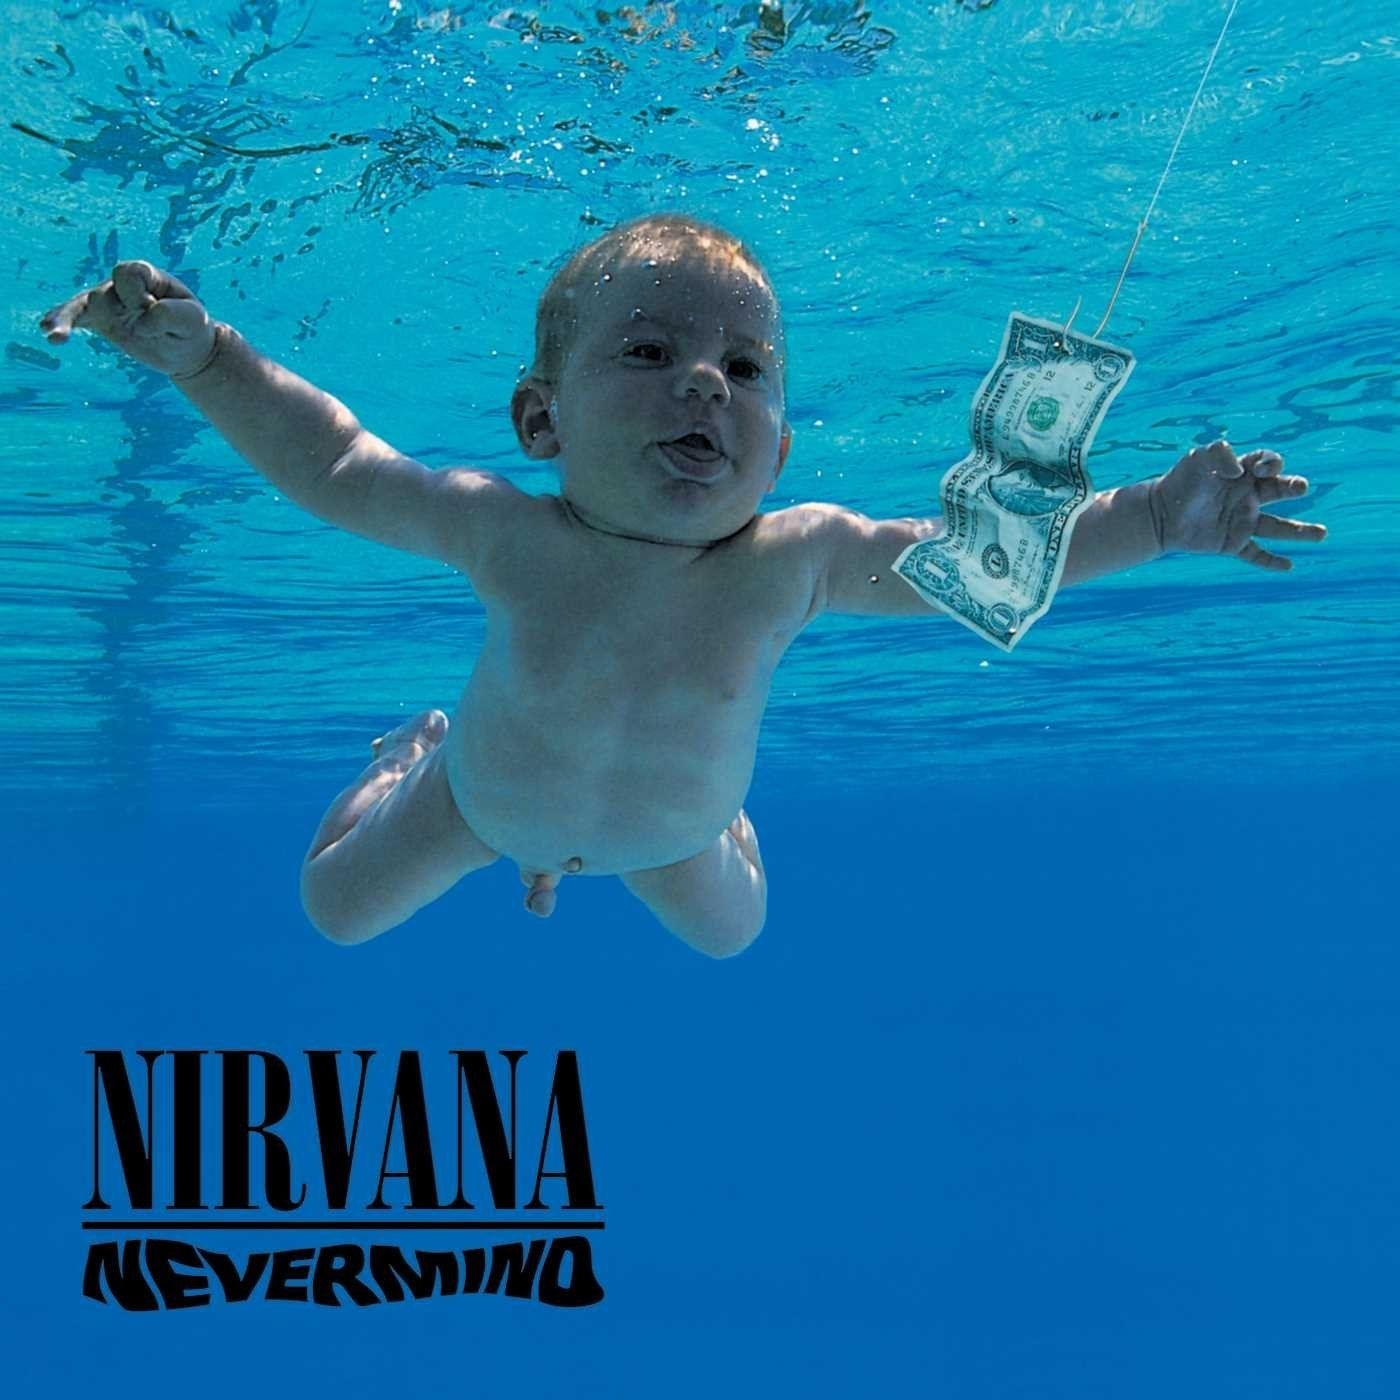 92902_nirvana_nevermind_geffen_sub_pop.011c6919